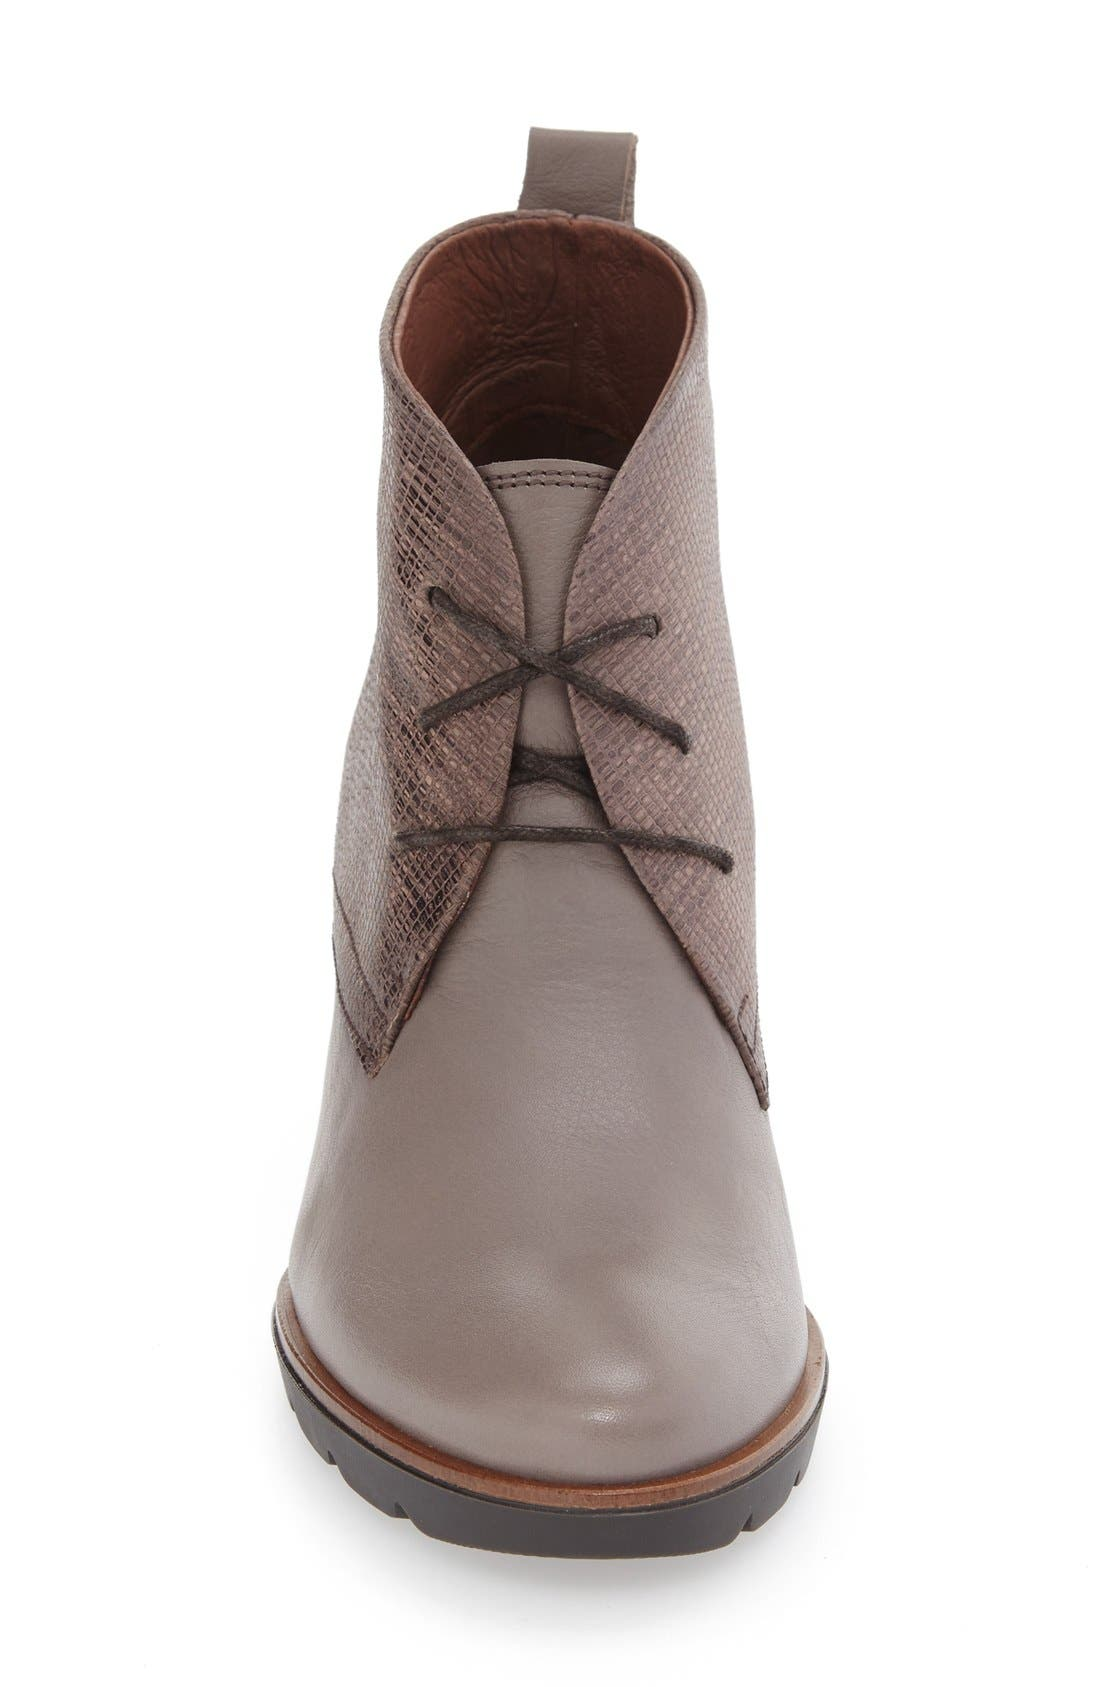 'Harmonie' Lace-Up Wedge Bootie,                             Alternate thumbnail 2, color,                             200